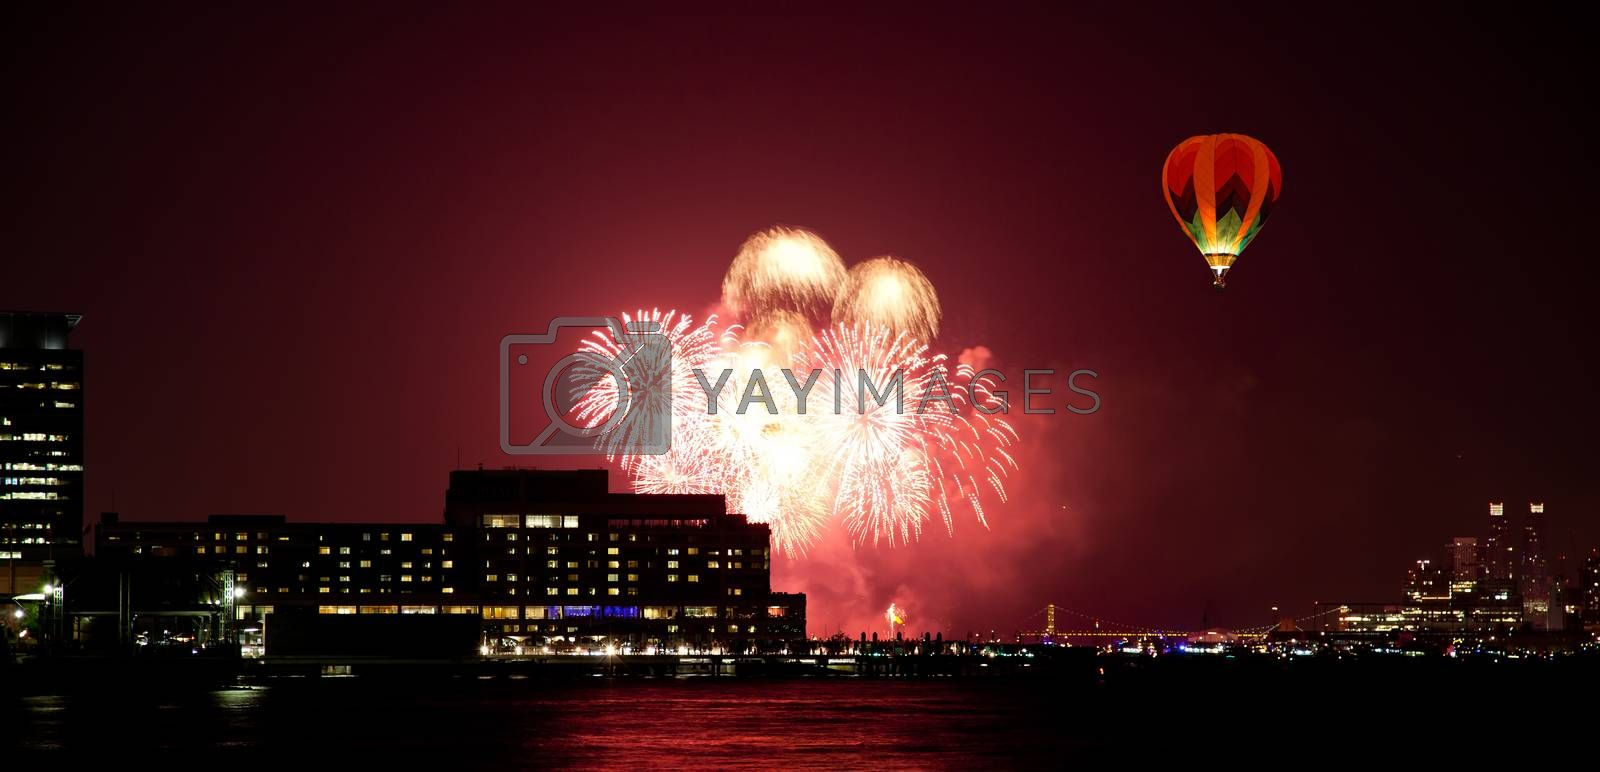 The 4th of July fireworks over the Hudson River